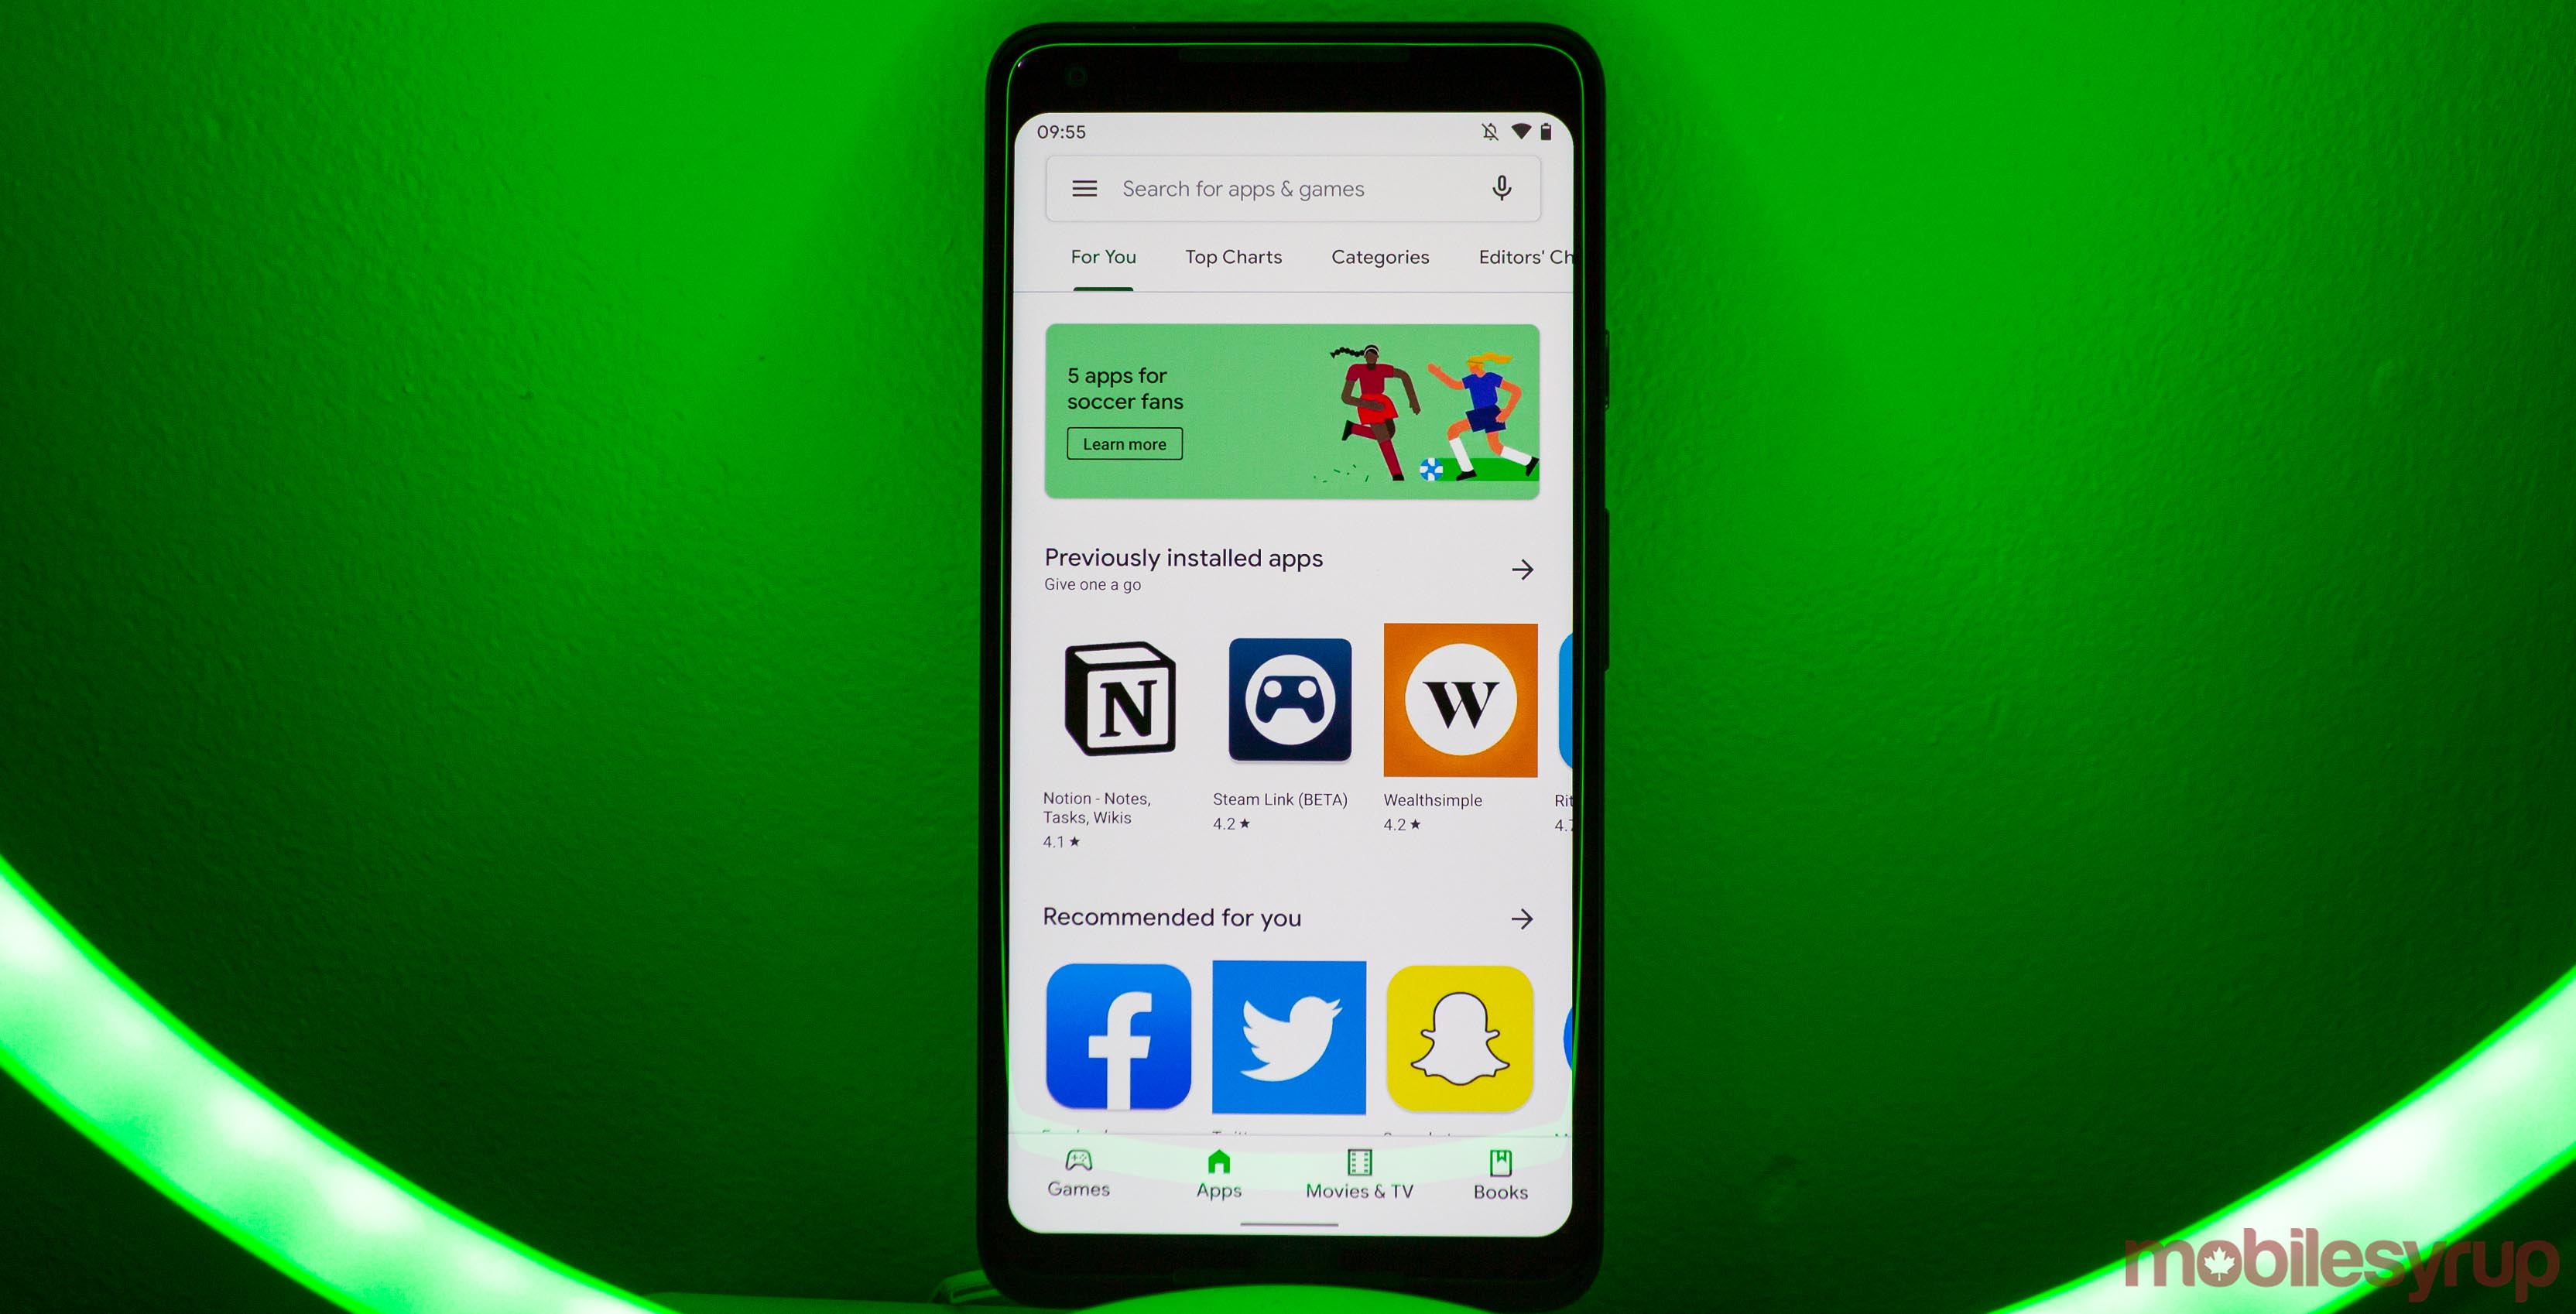 Developers can now add 'tags' to apps in the Play Store to